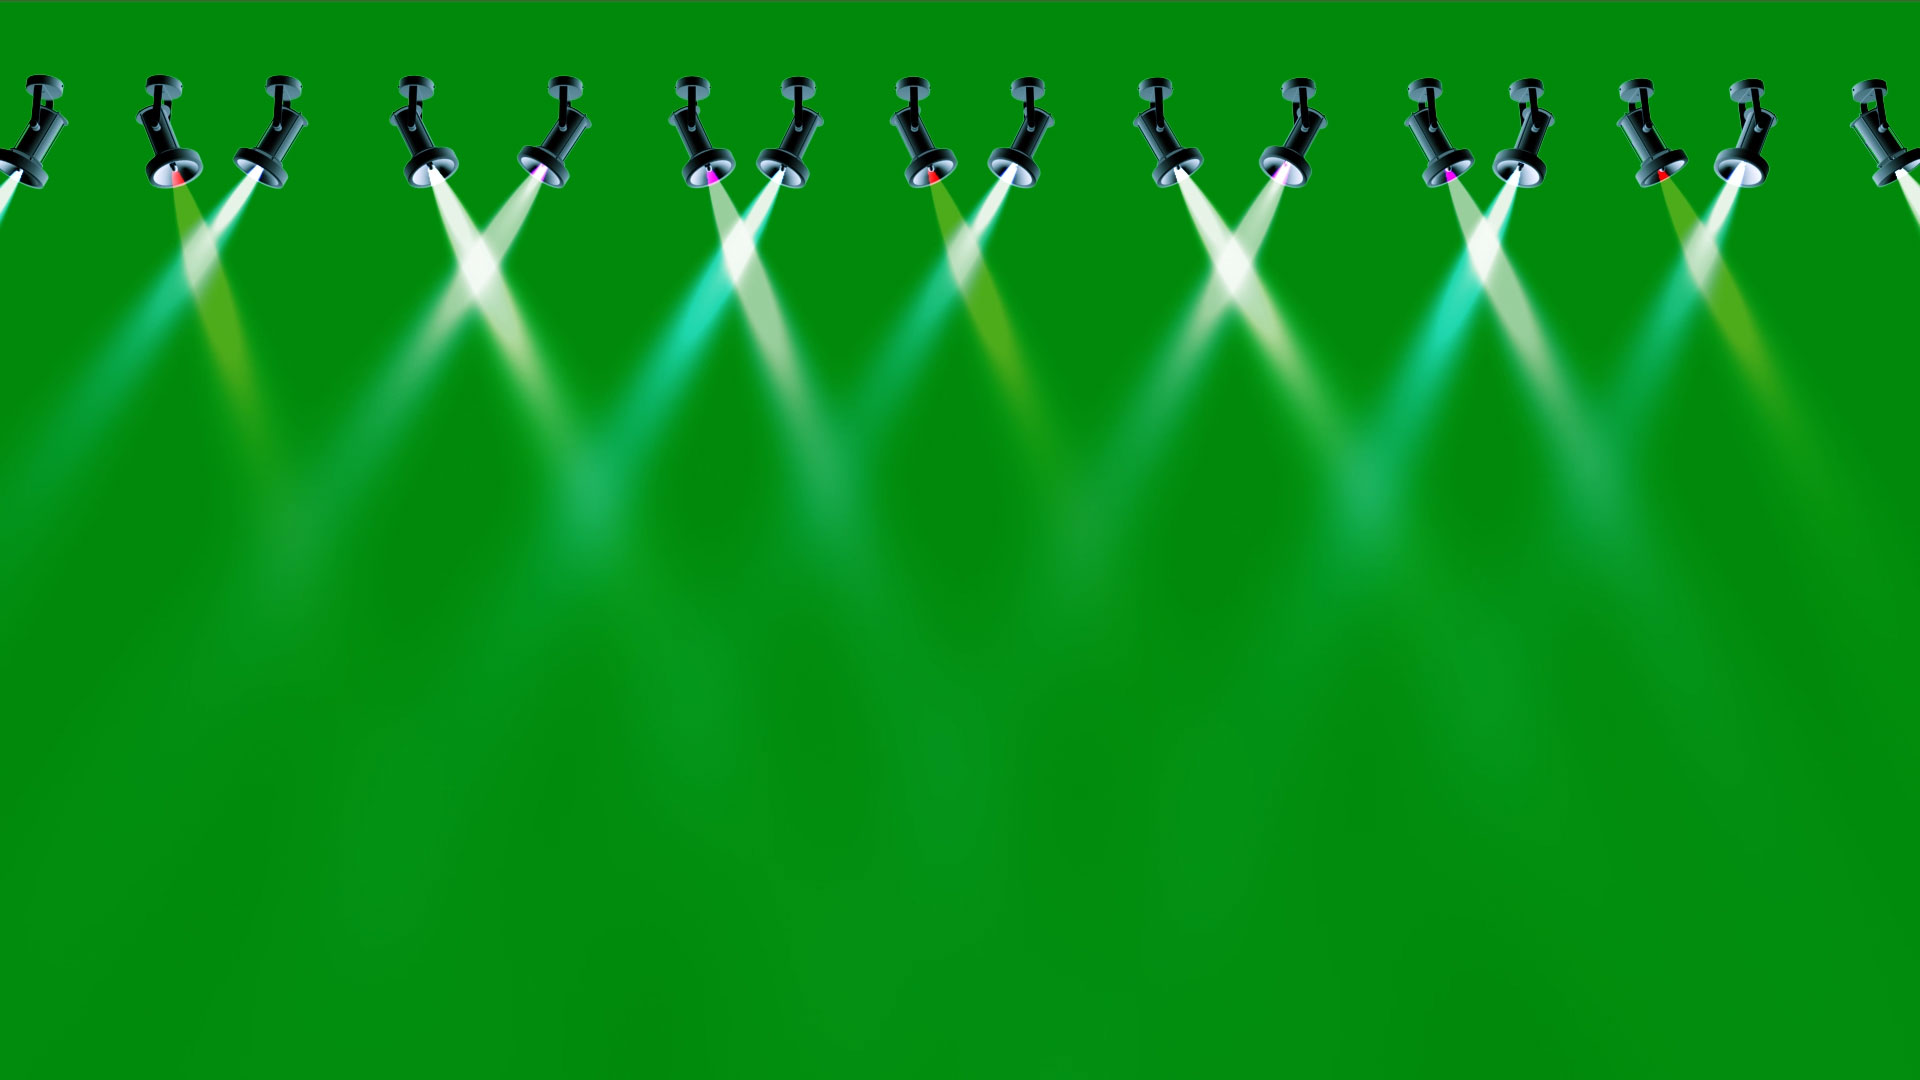 Premium Concert Stage 16 Lights Green Screen Background